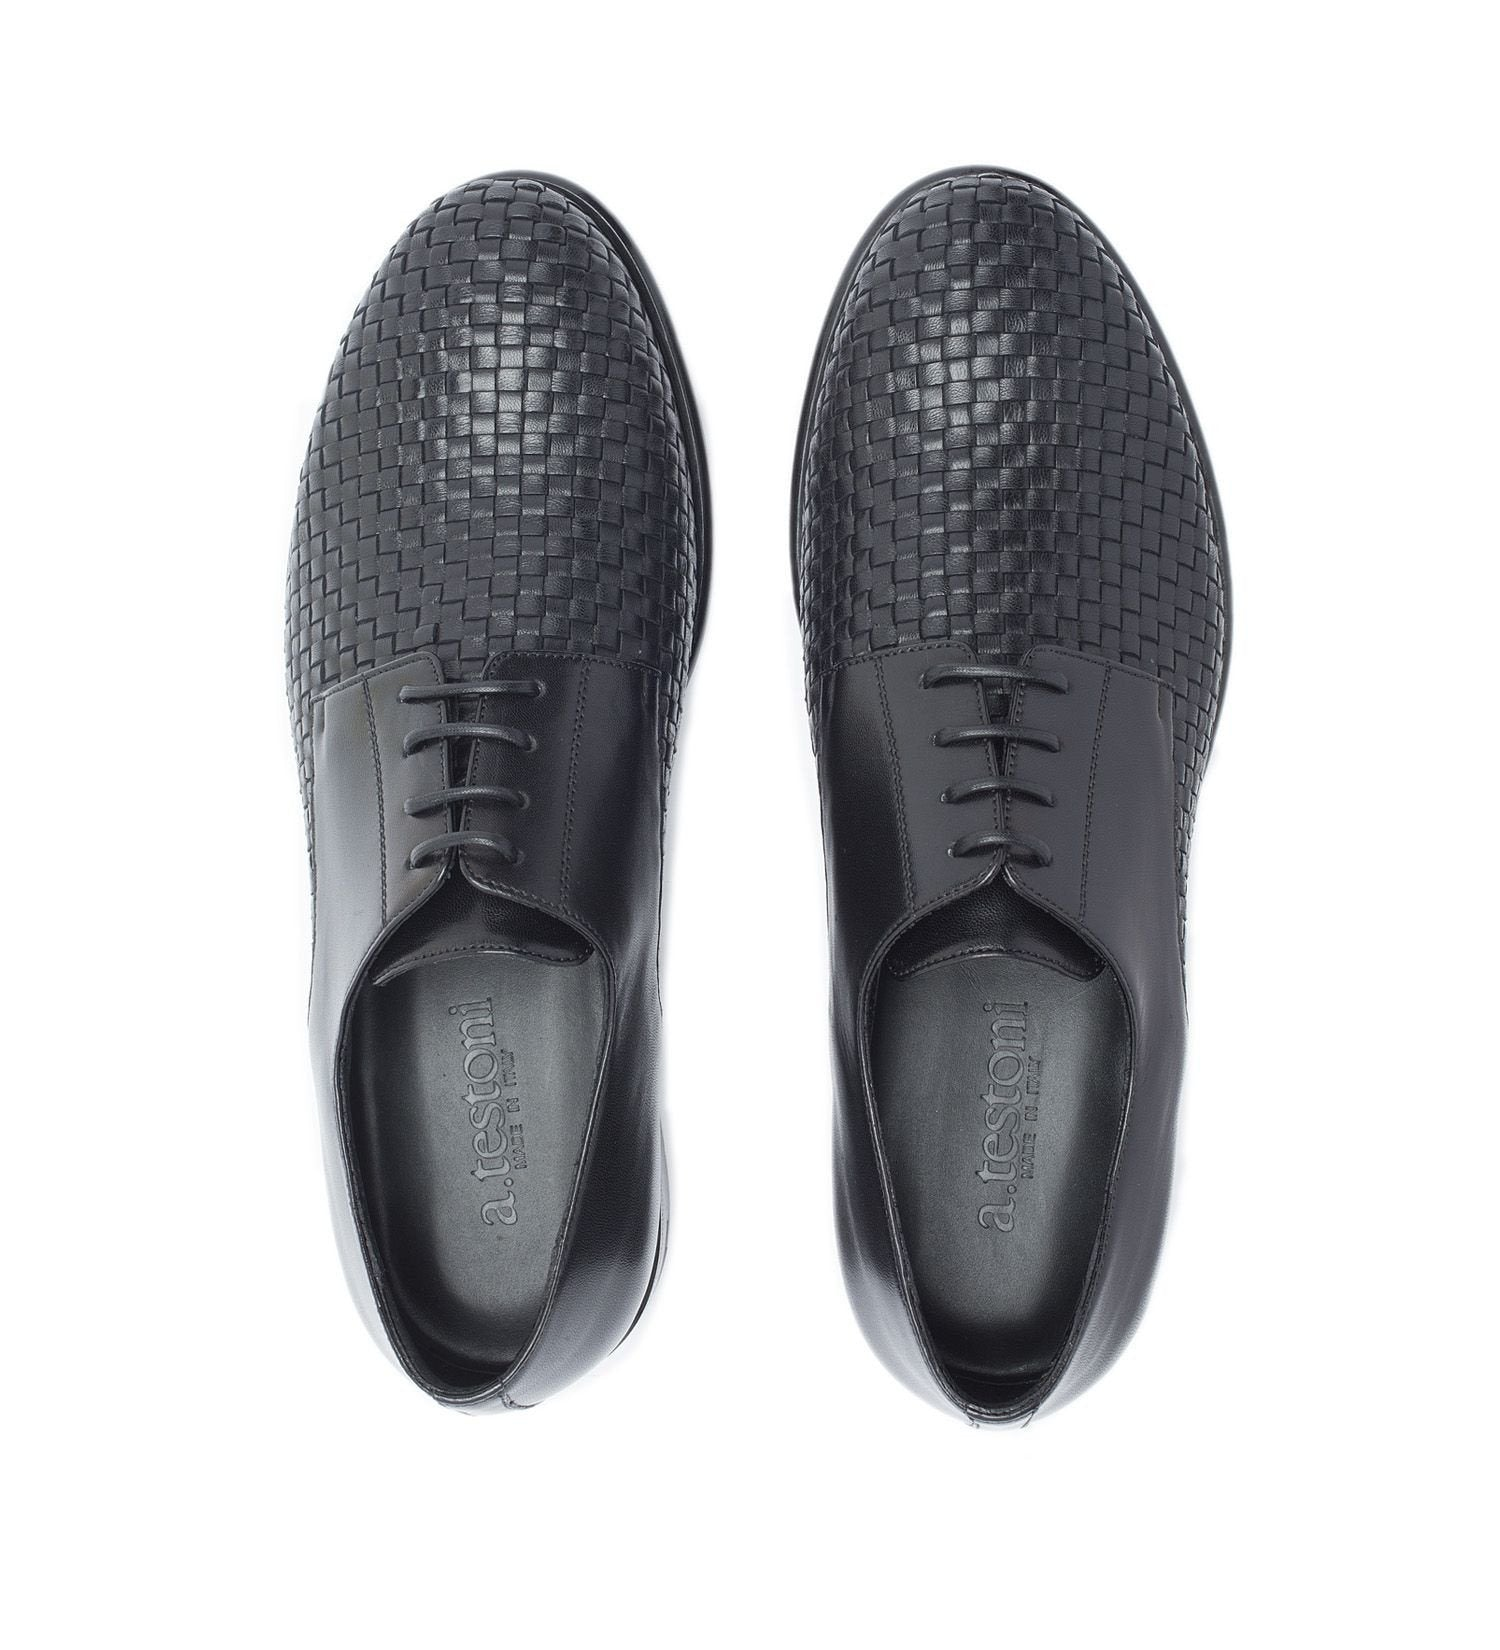 LACE-UP IN WOVEN NAPPA,SHOES,A.TESTONI, | GentRow.com